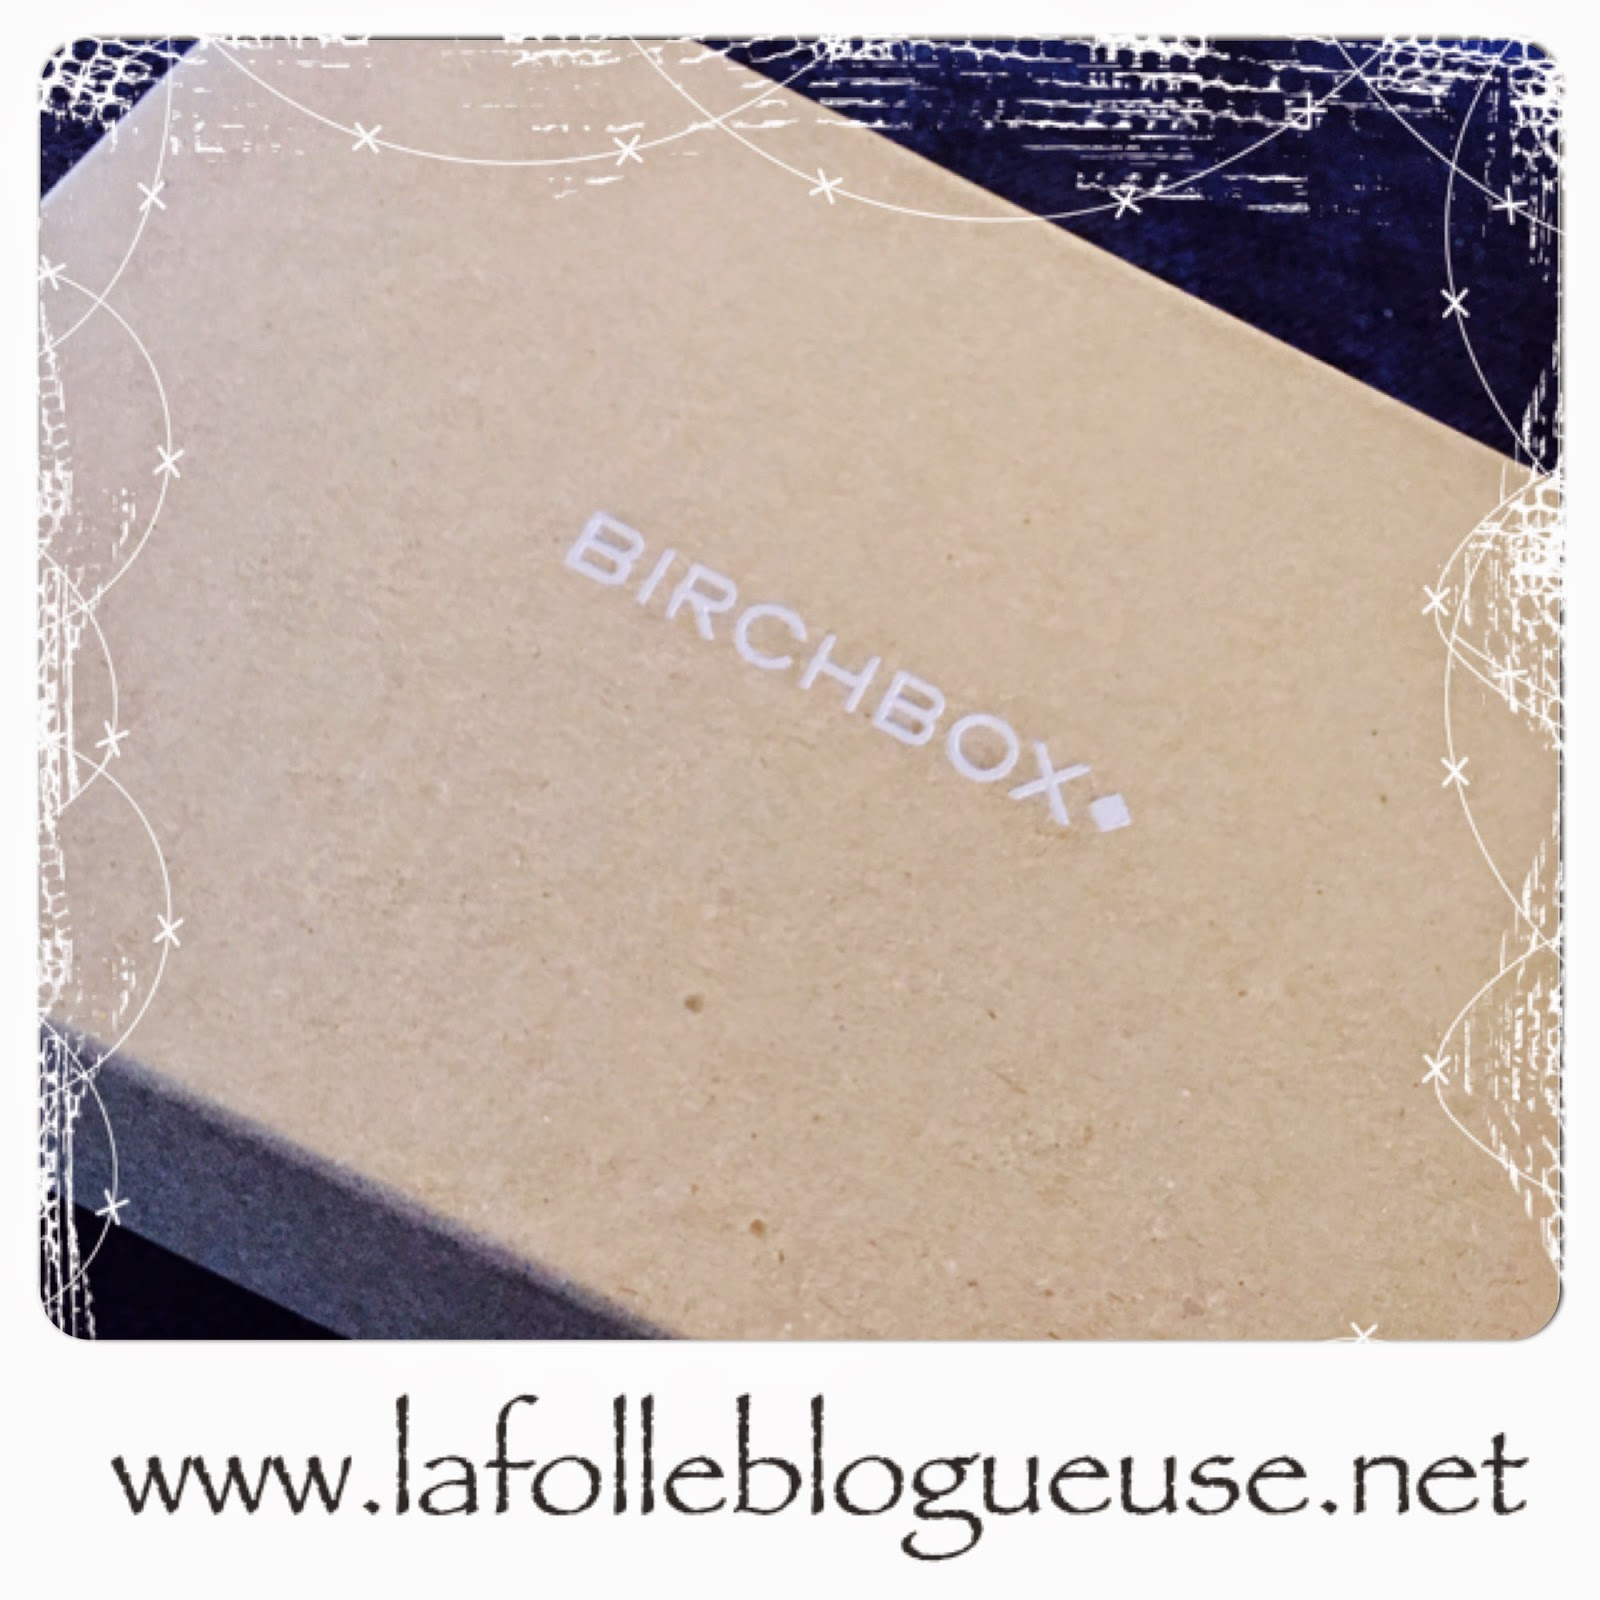 birchbox, fit, pretty, janvier, box, beauté, aussie, polaar, thermaliv, marvis, cindy-lou manizer, happy journal